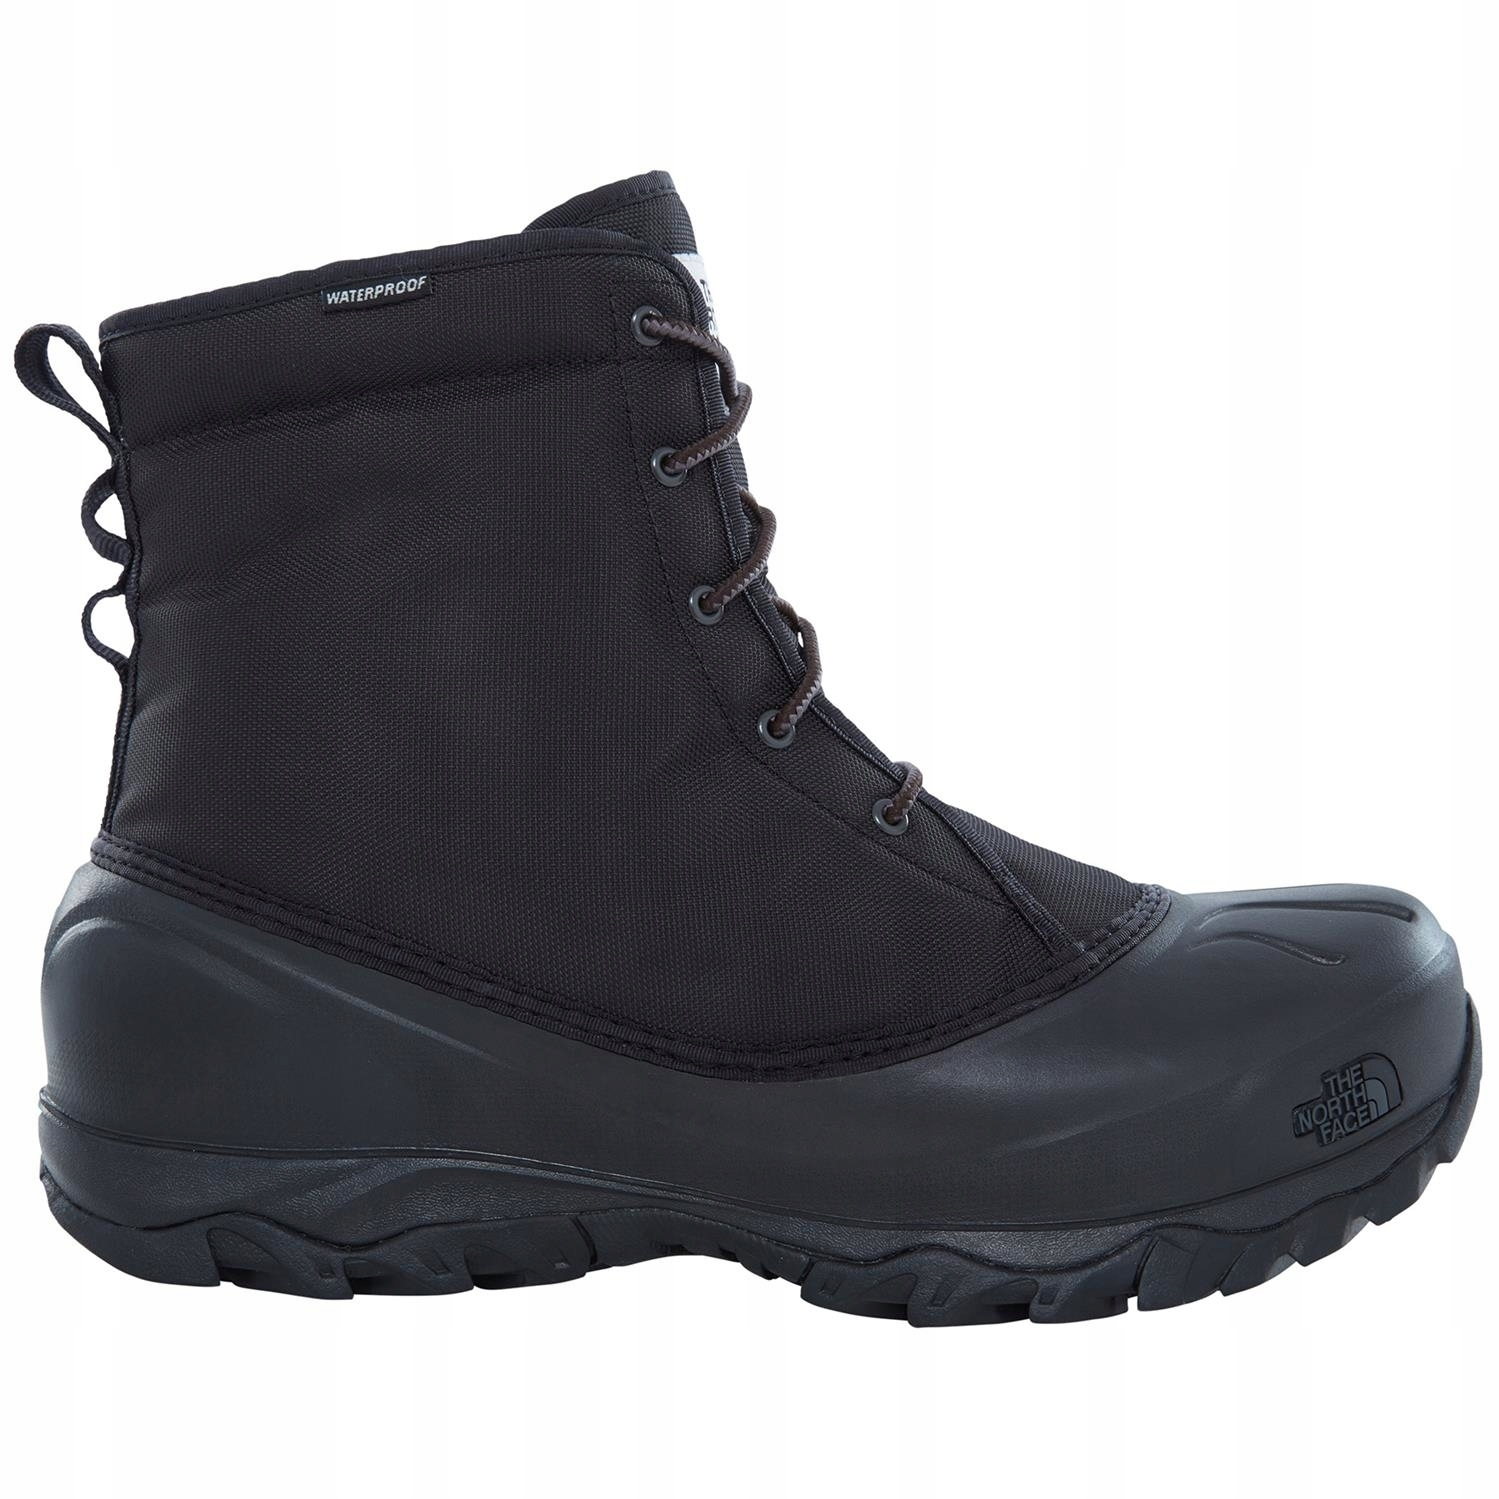 5cf9181208f24 BUTY THE NORTH FACE TSUMORU T93MKSZU5 r 42,5 - 7411844871 ...